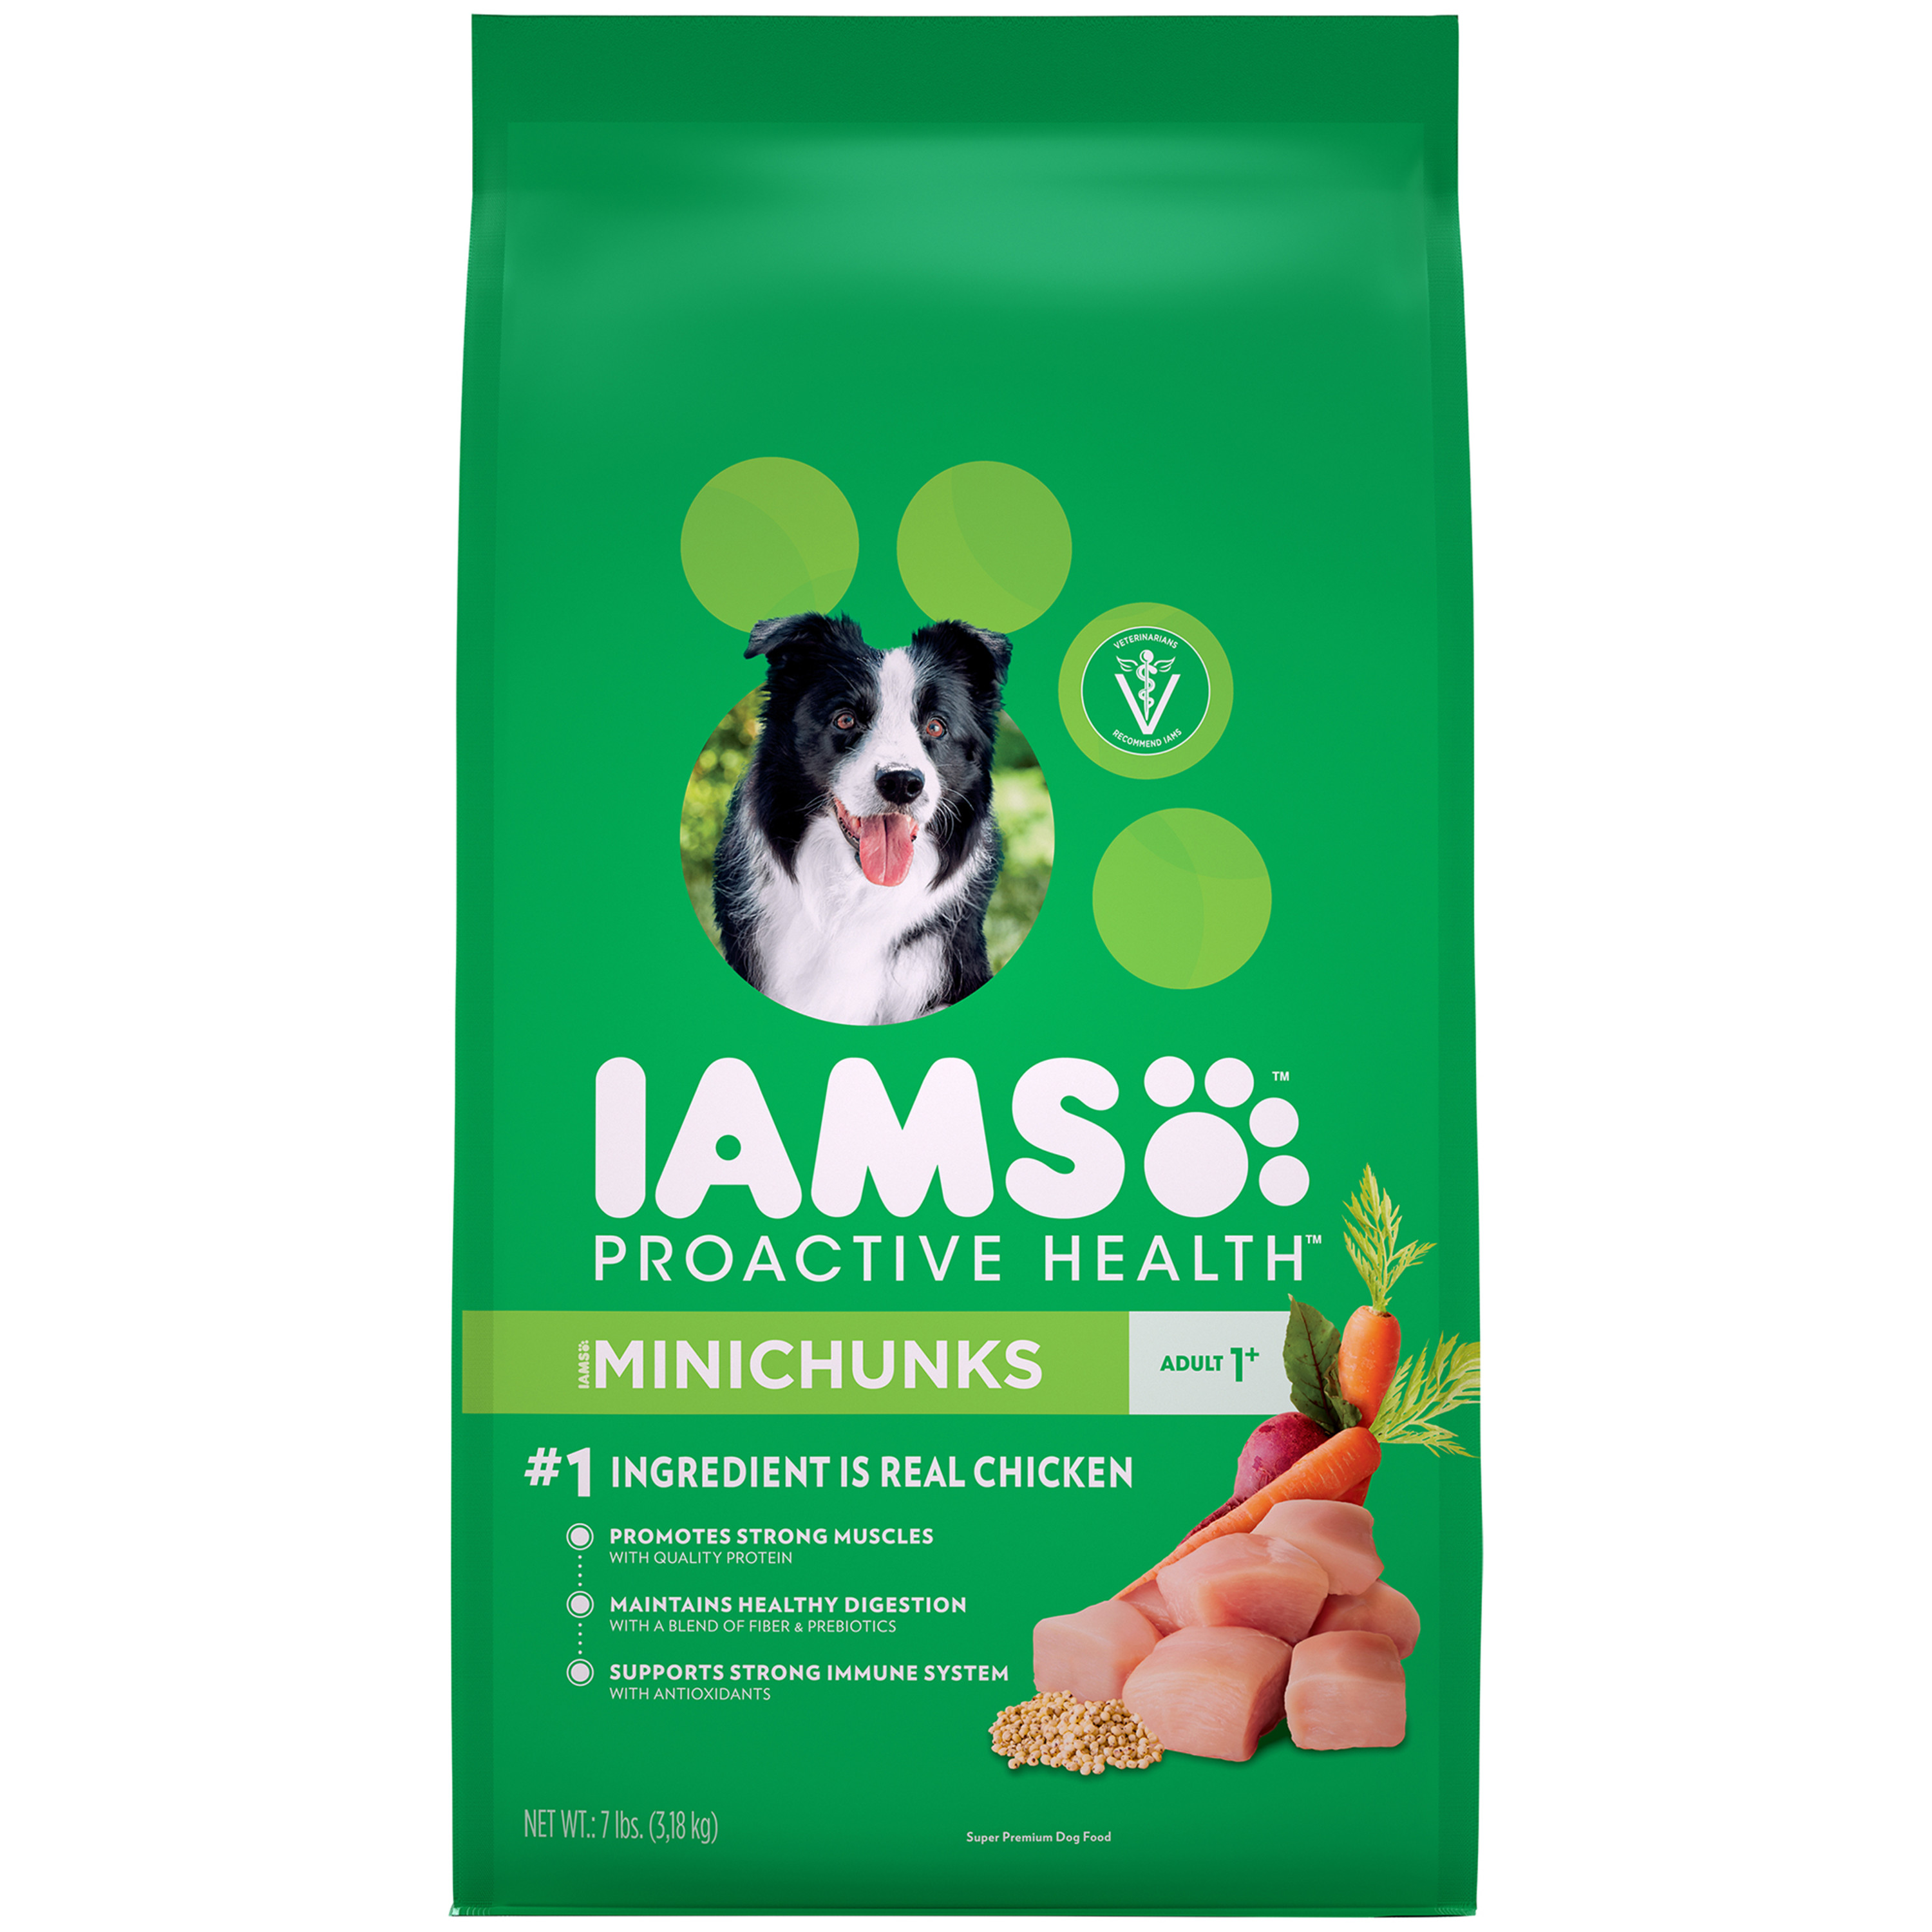 Iams Proactive Health Minichunks Dry Dog Food, Chicken, 7 Lb